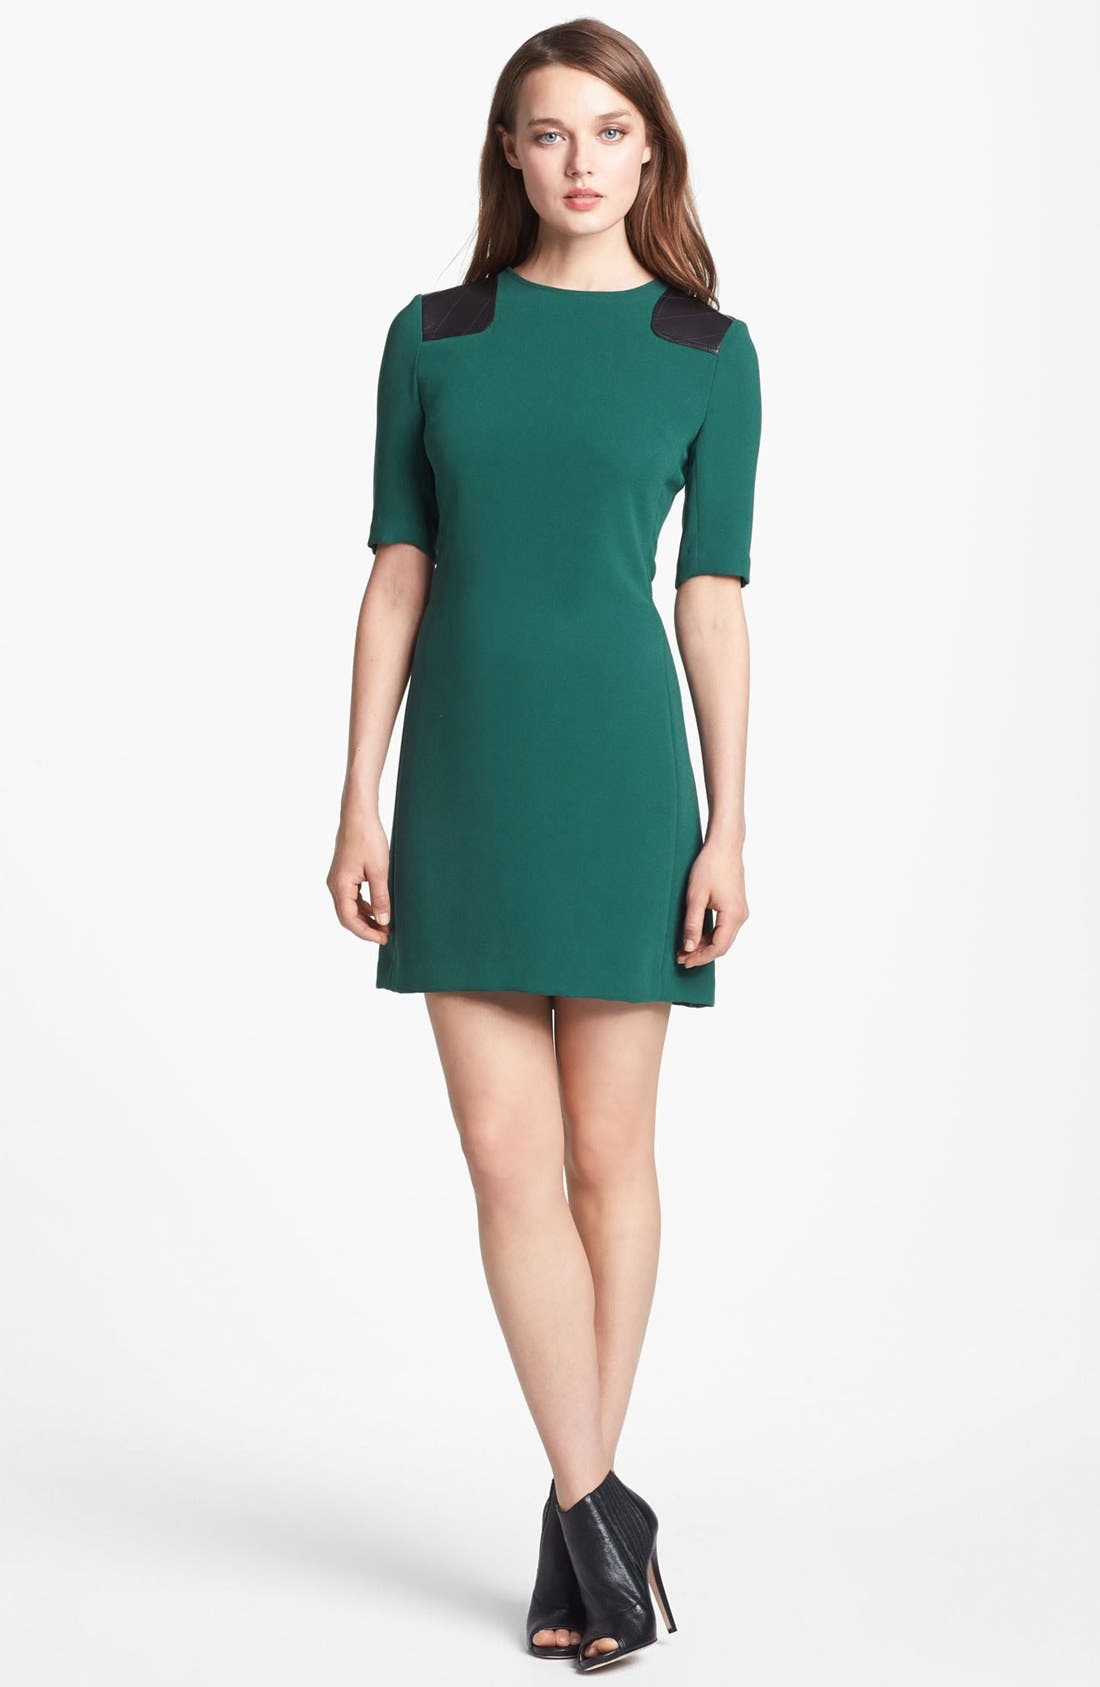 Alternate Image 1 Selected - MARC BY MARC JACOBS 'Sparks' Crepe & Leather Sheath Dress